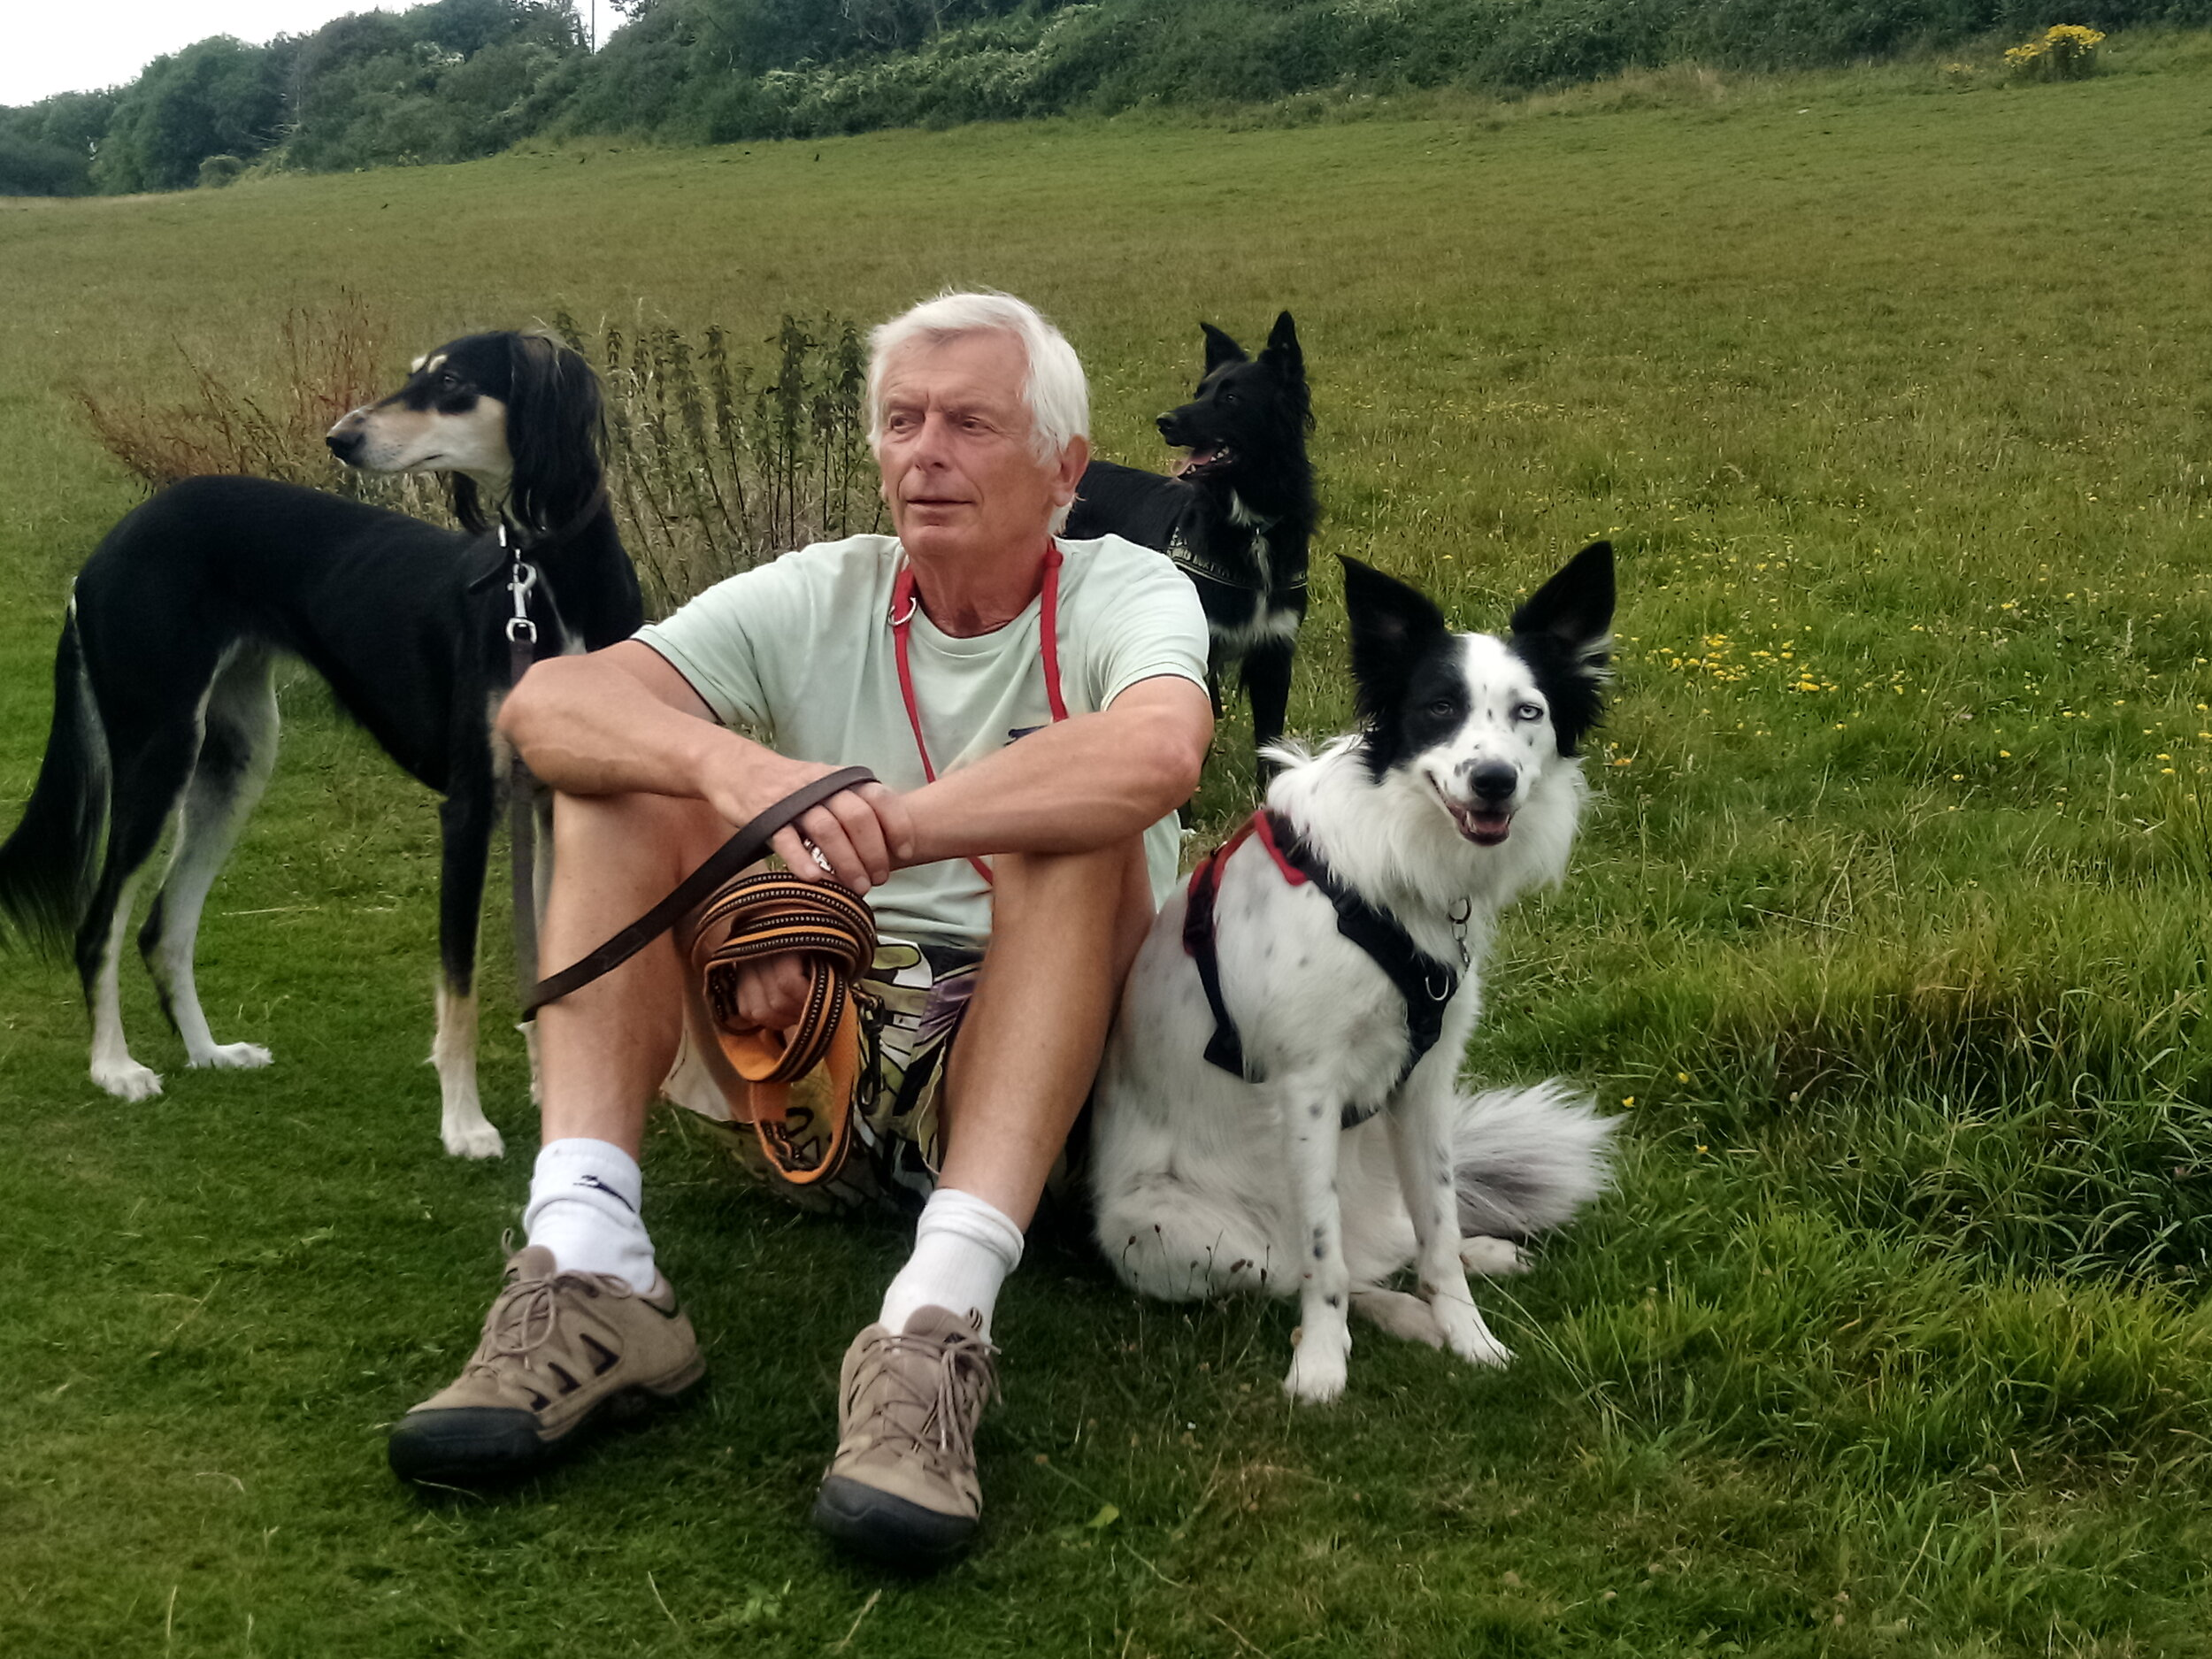 Ian with his walking companions on the South Downs.